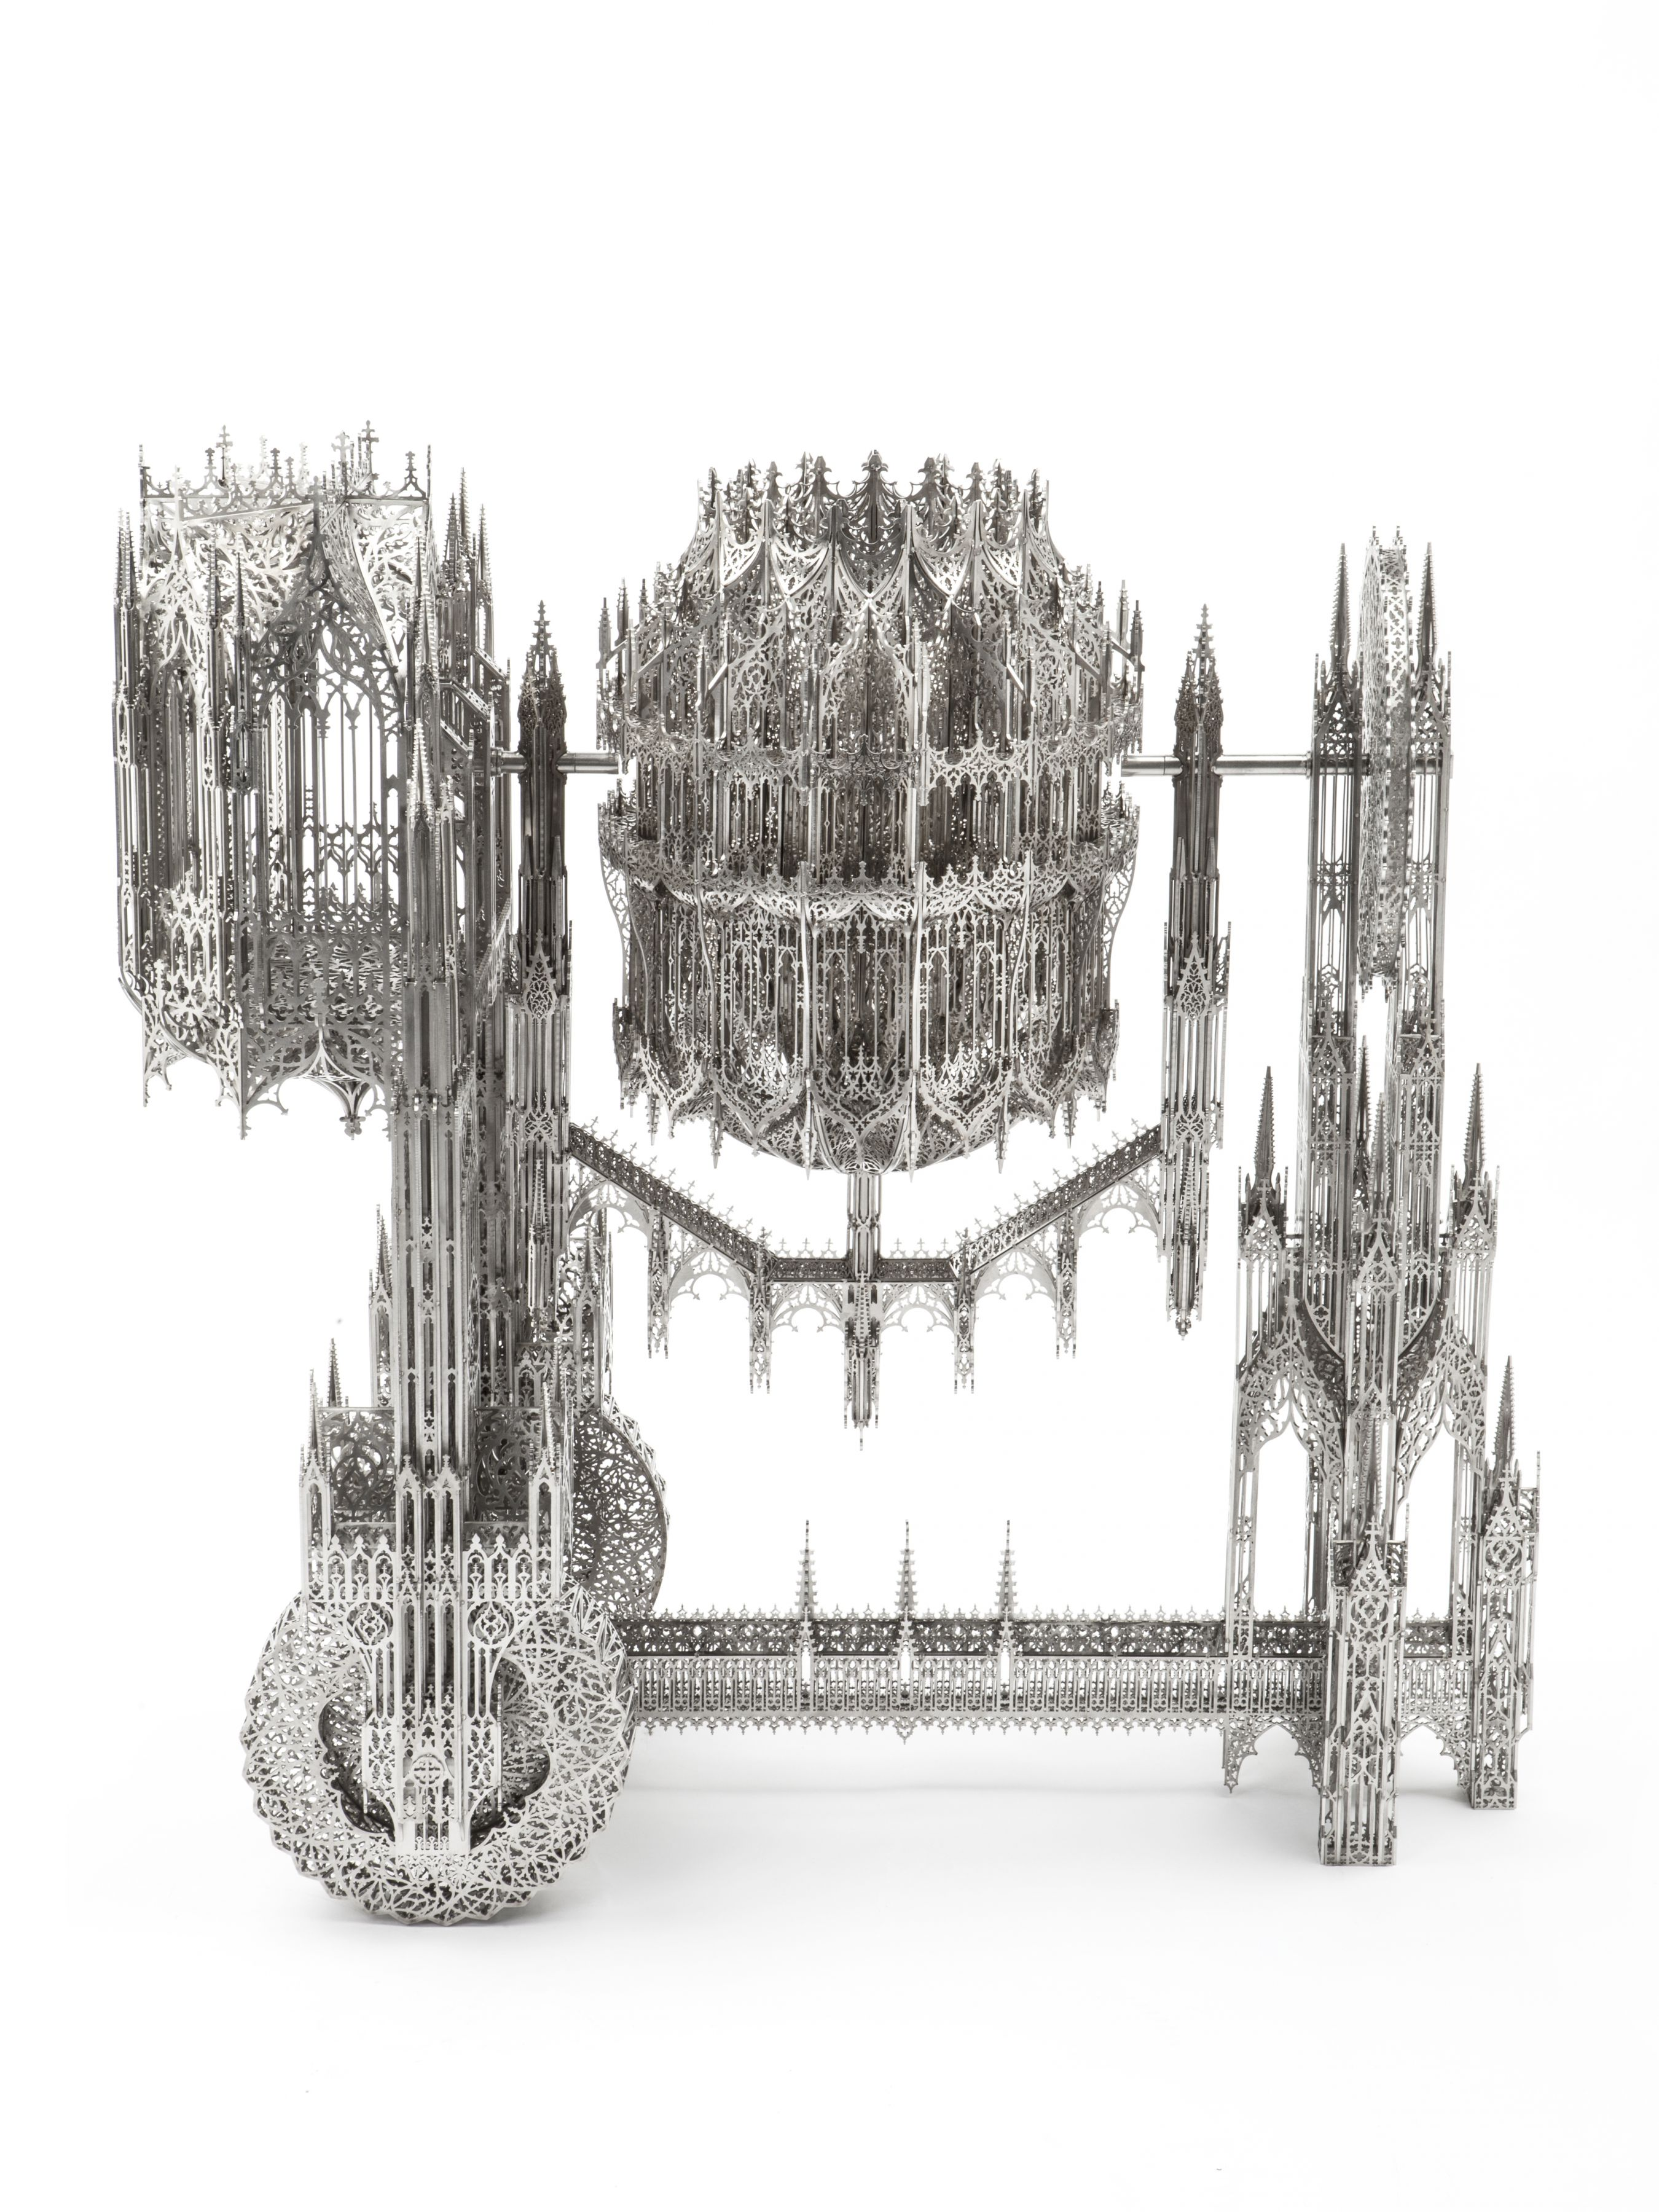 Concrete Mixer, 2010, Laser-cut stainless steel